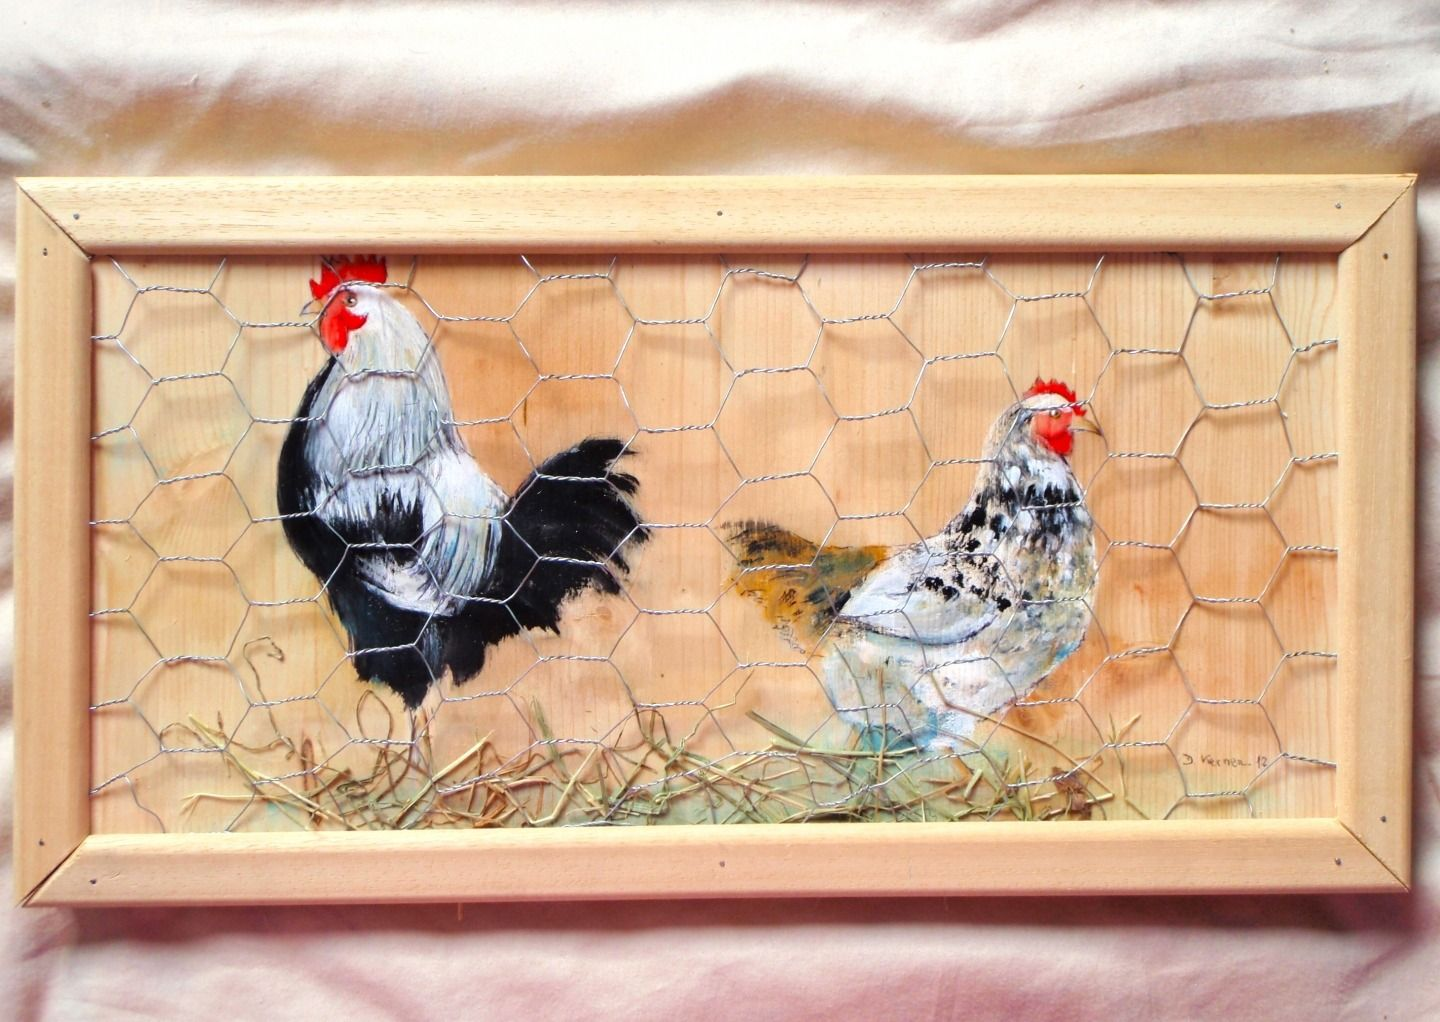 peintures peinture sur bois avec une poule poules pinterest decoupage and primitives. Black Bedroom Furniture Sets. Home Design Ideas